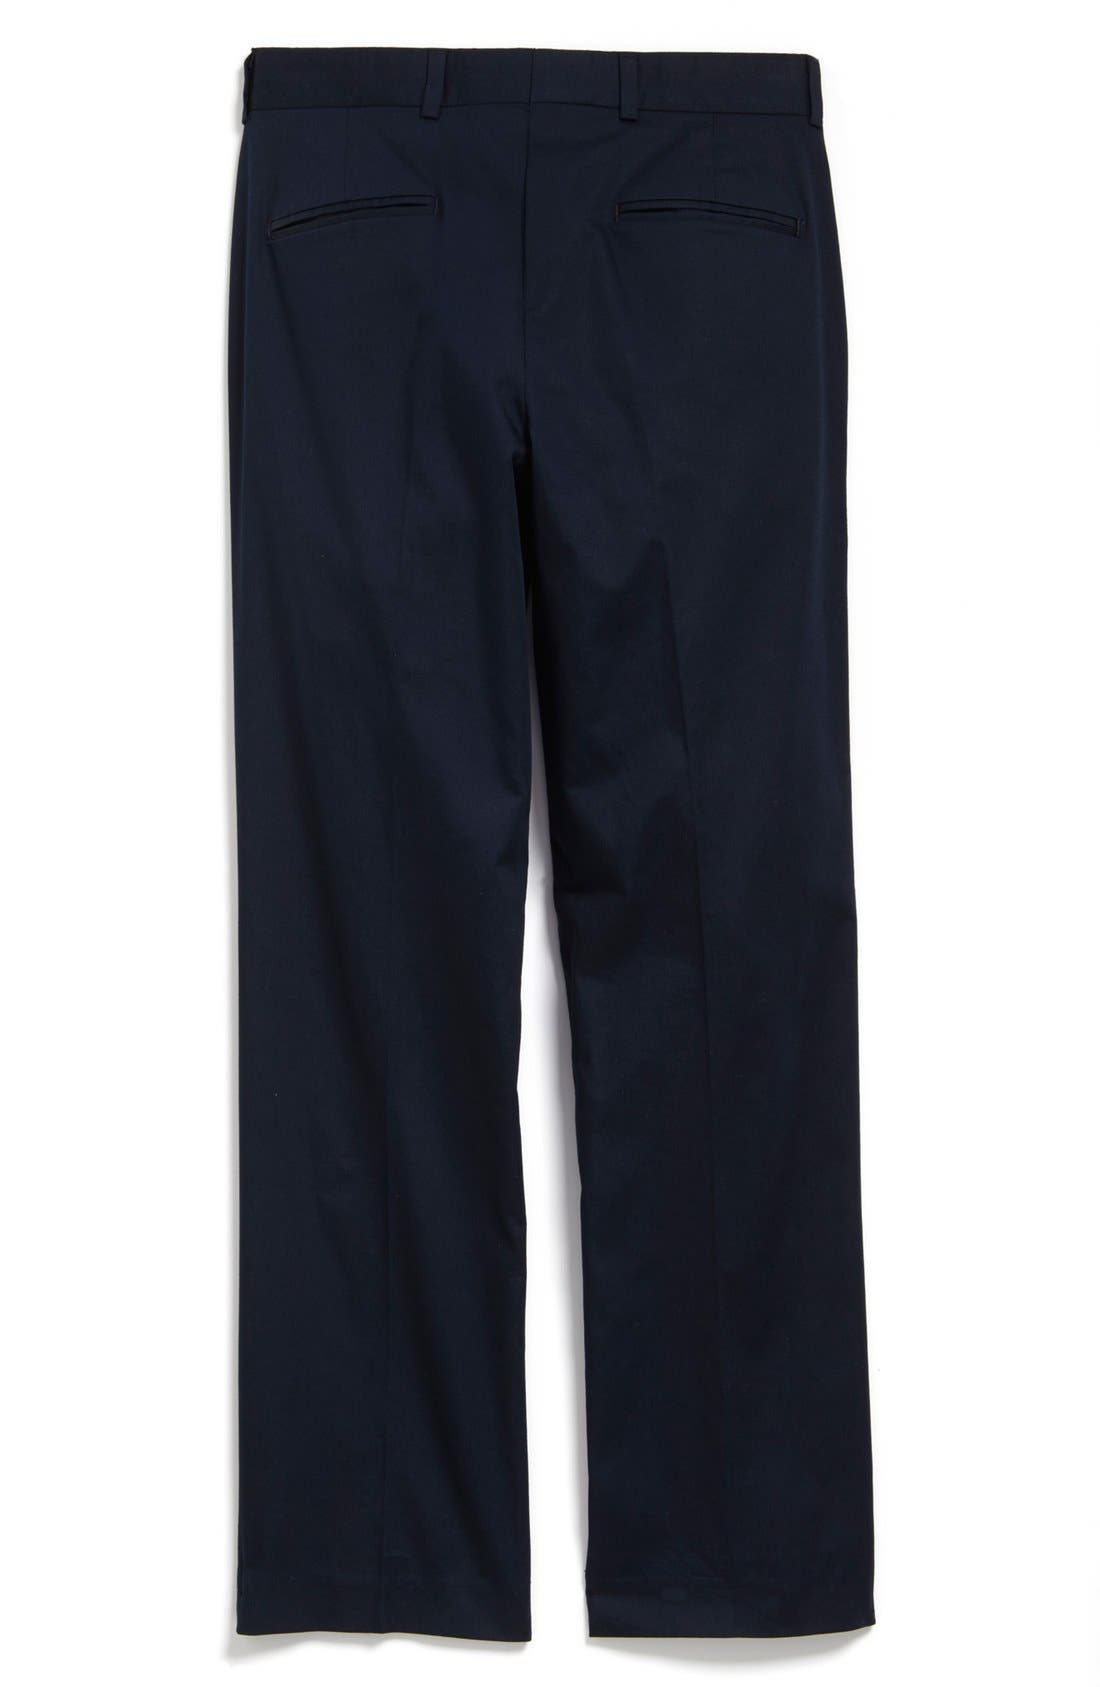 Alternate Image 2  - C2 by Calibrate 'Sterling' Dress Pants